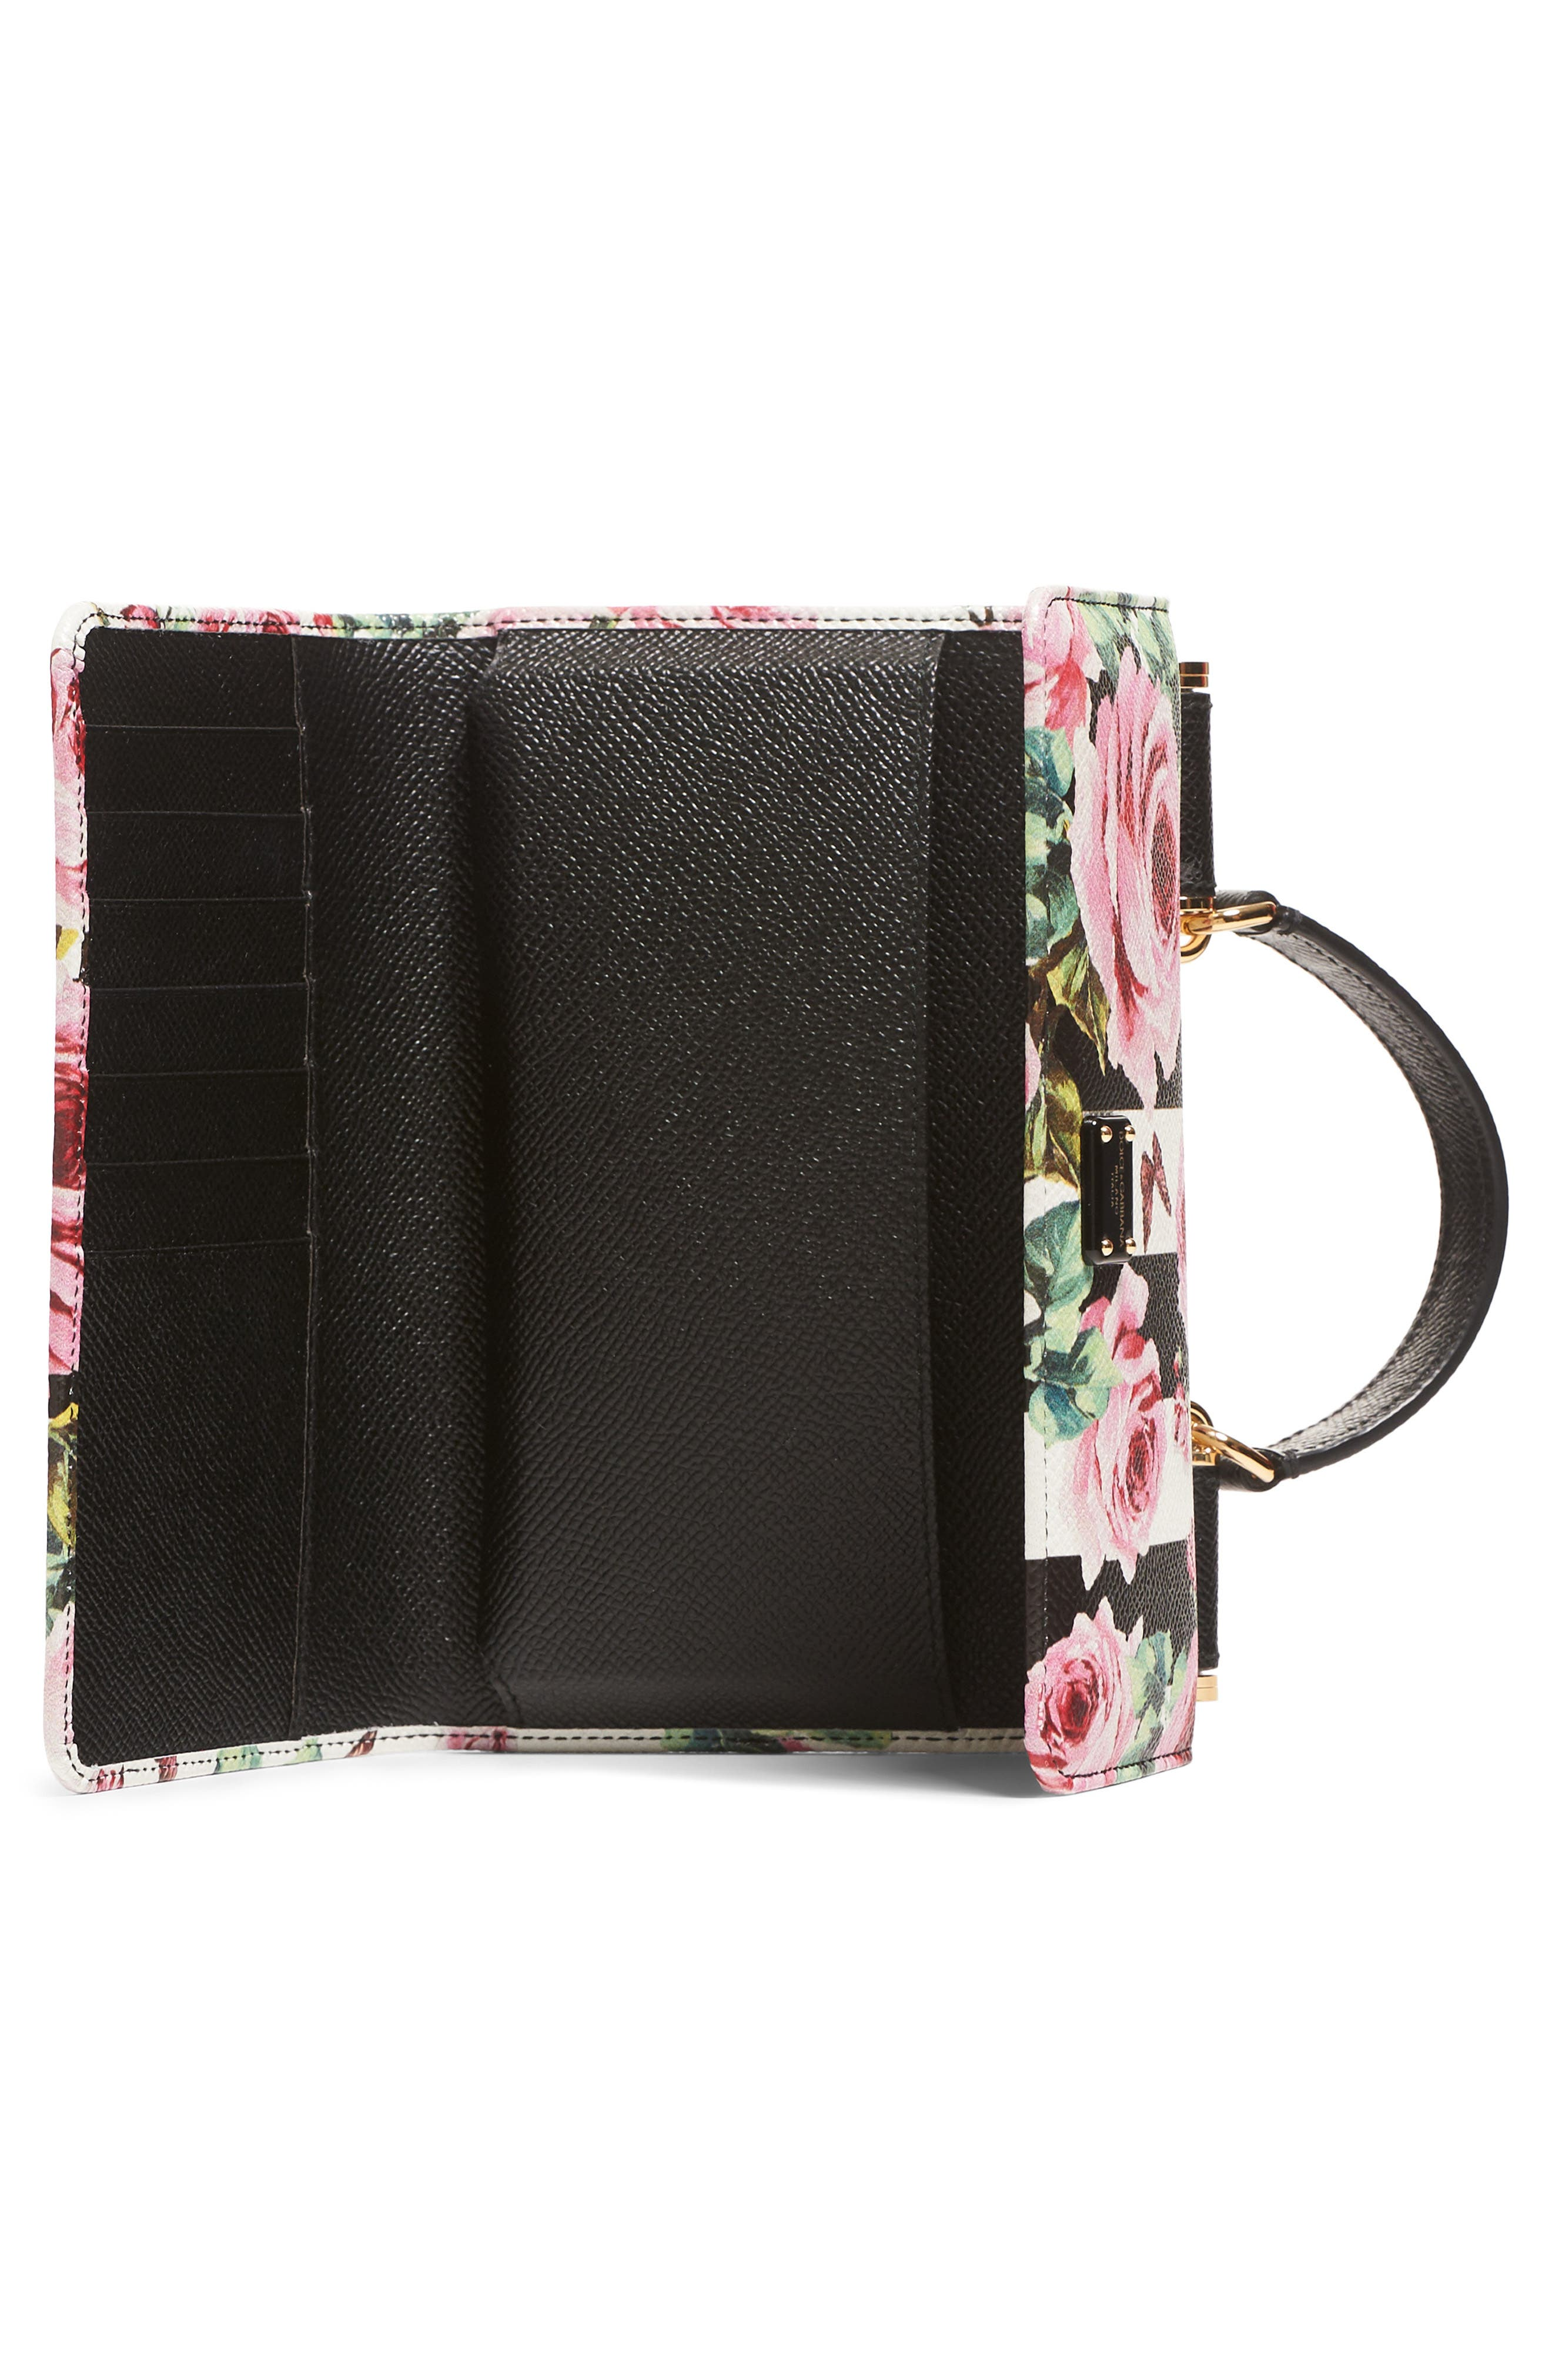 Mini Stripe Floral Calfskin Leather Bag,                             Alternate thumbnail 3, color,                             650